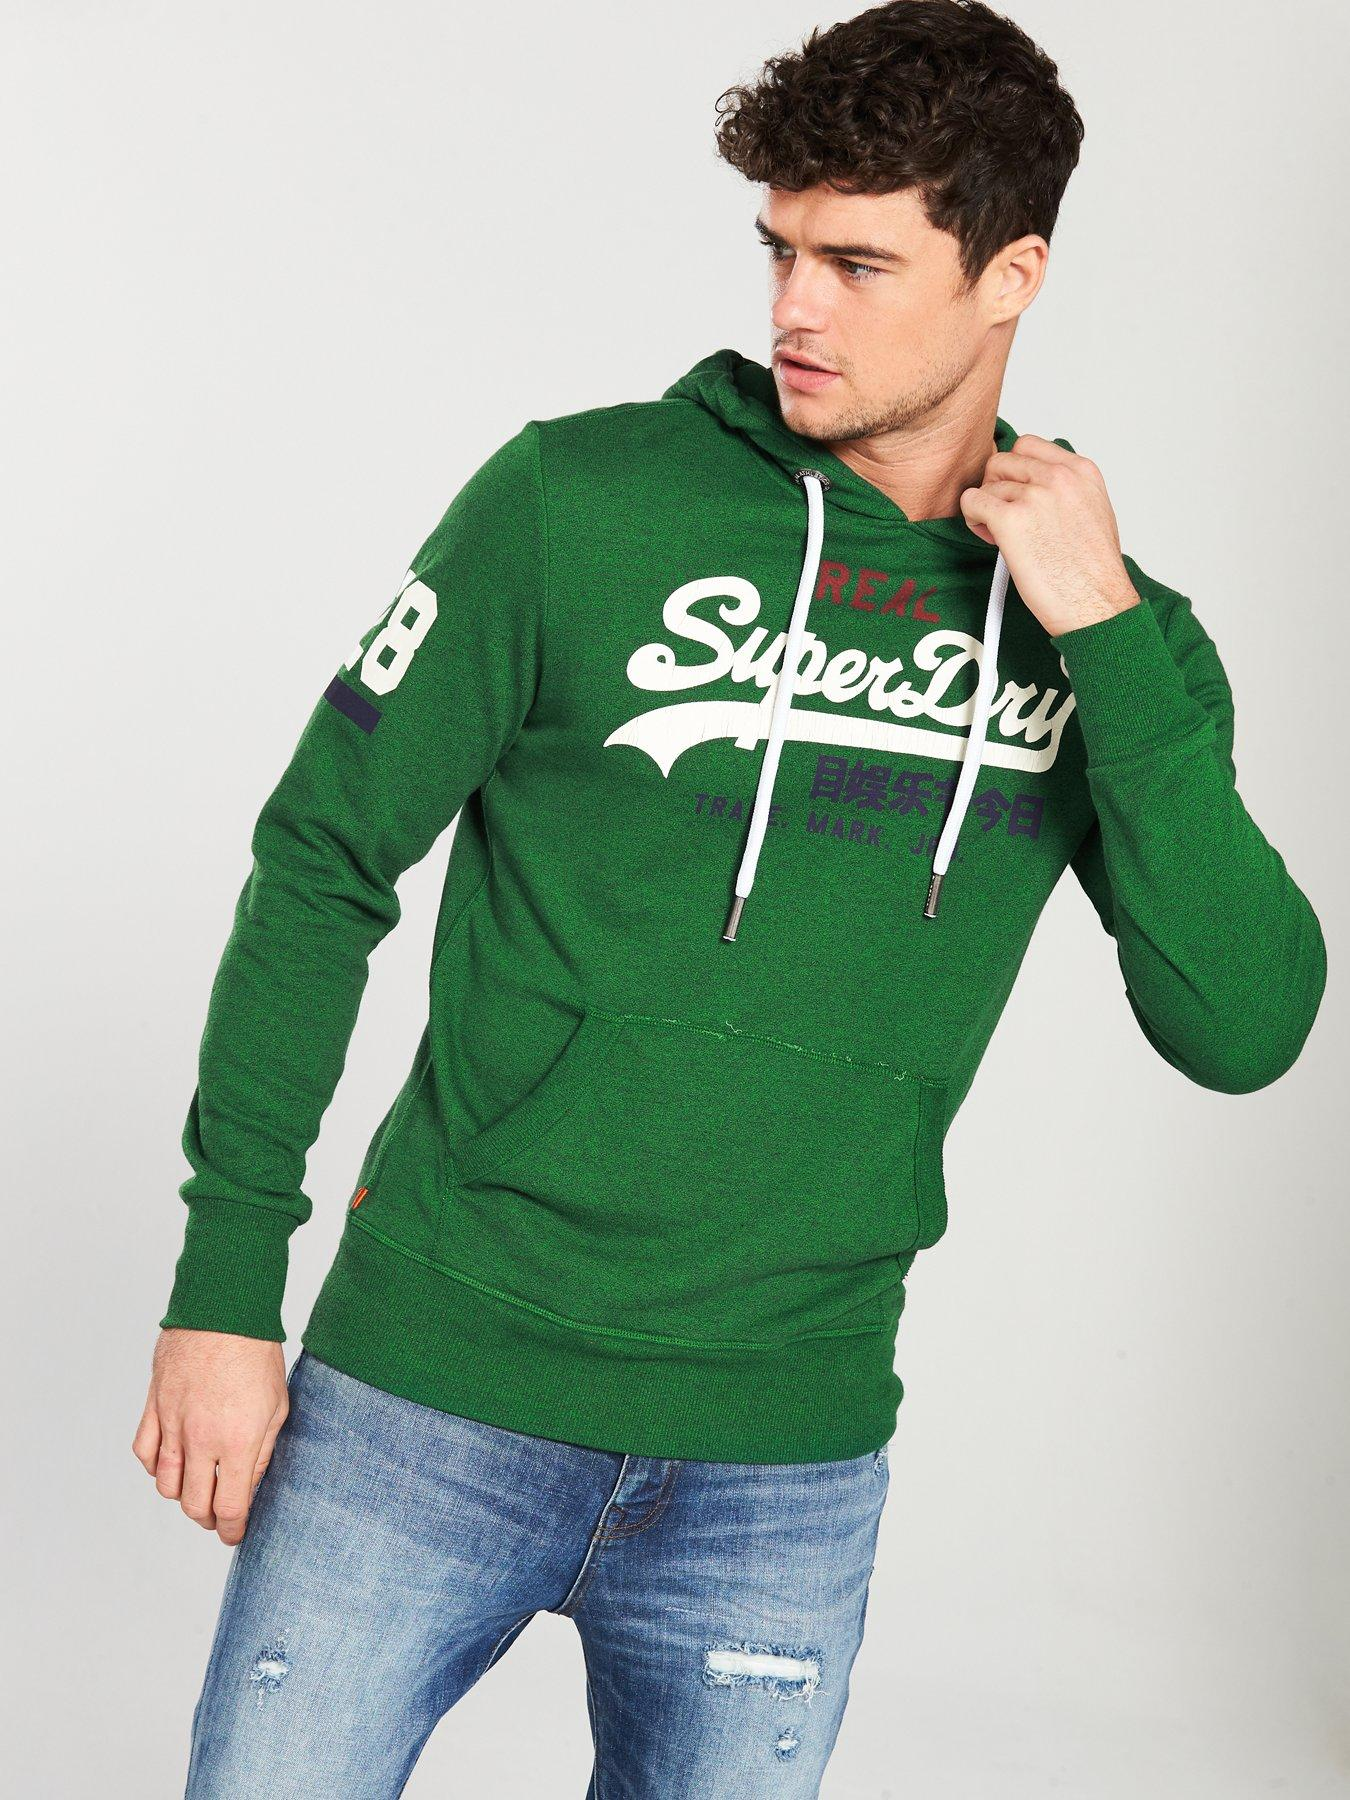 cfd02ca63a201 Hoodies Littlewoods Ireland Superdry amp; Men's Sweatshirts qfSF1w5